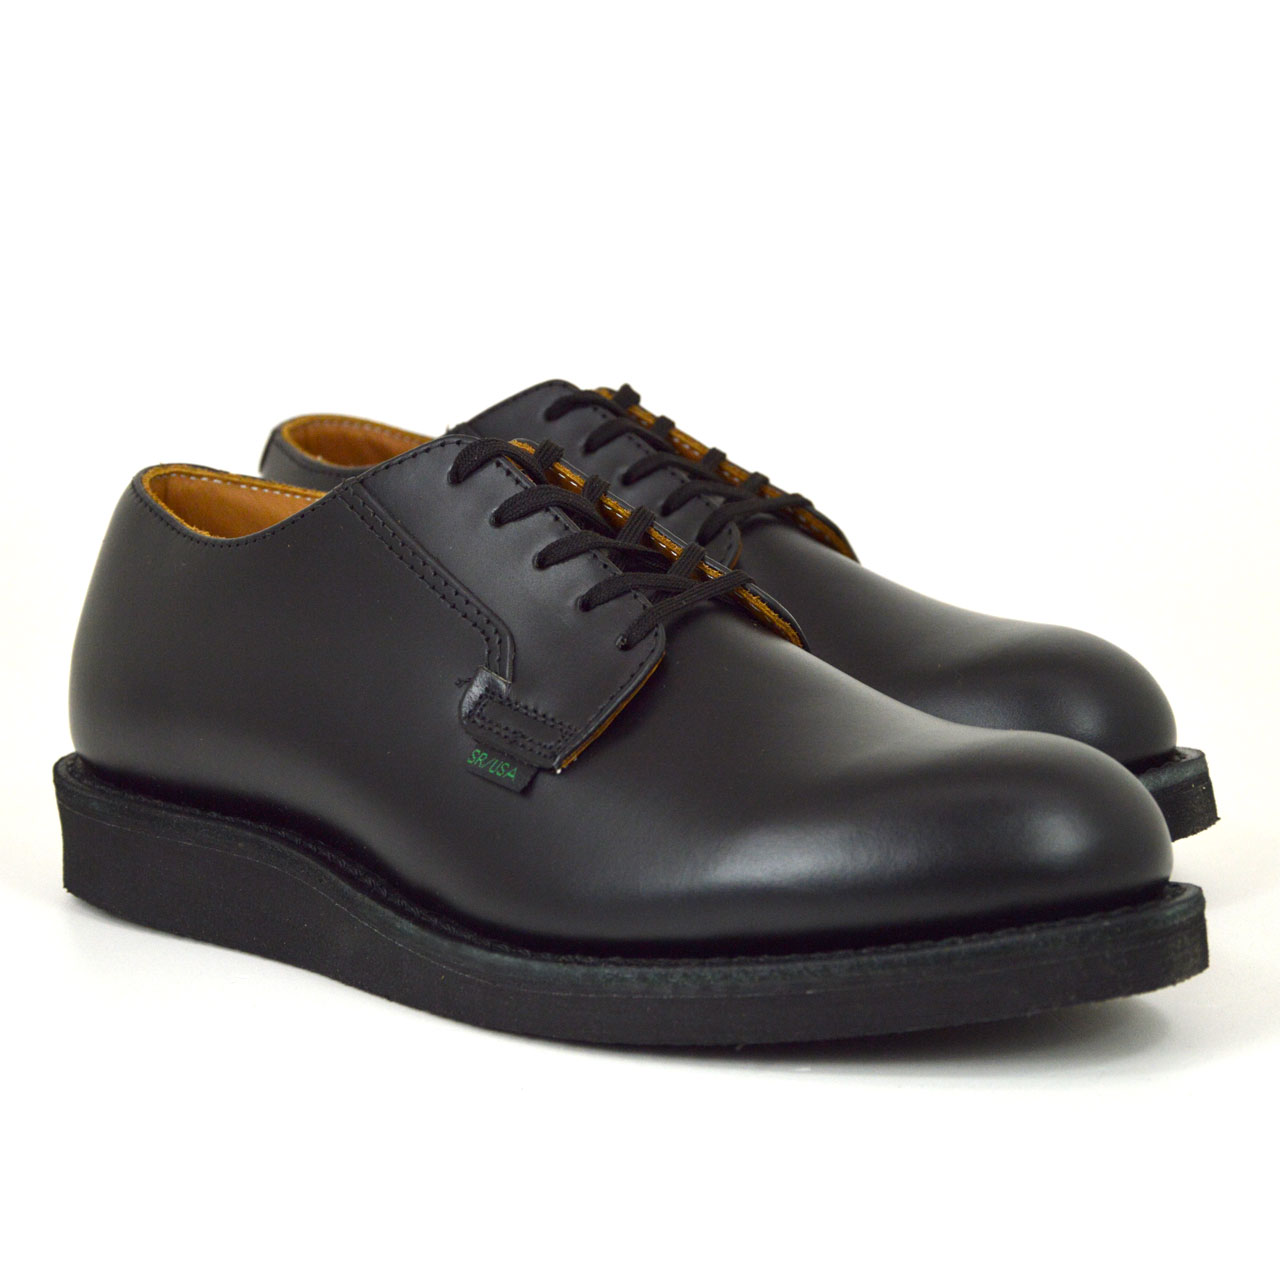 Red Wing - POSTMAN 101 - Black Chaparral